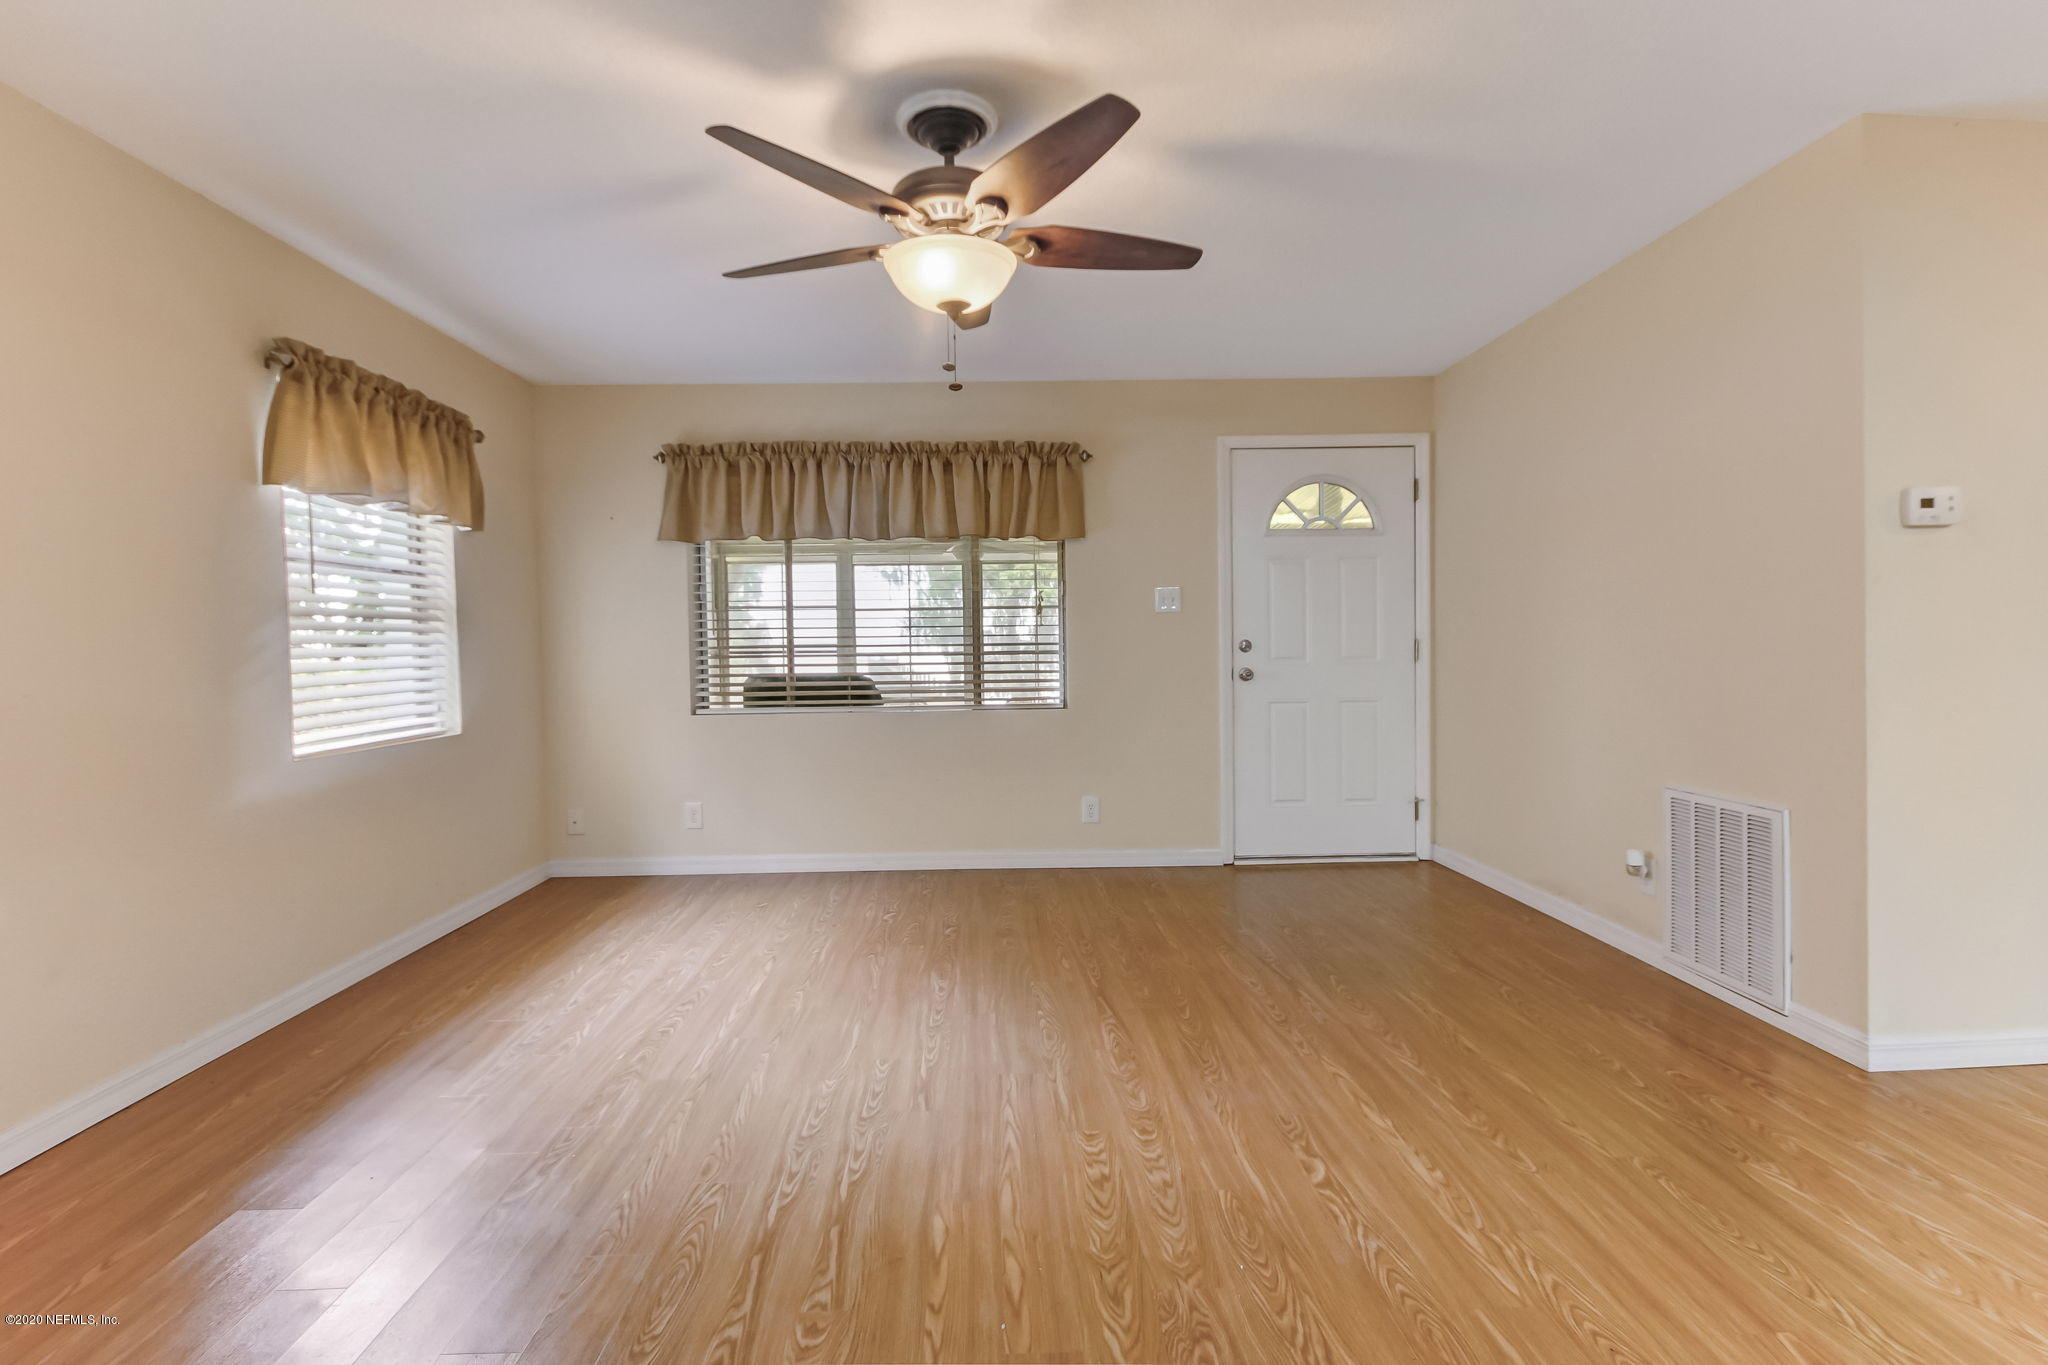 344 CRESCENT LAKE SHORE, CRESCENT CITY, FLORIDA 32112, 2 Bedrooms Bedrooms, ,2 BathroomsBathrooms,Residential,For sale,CRESCENT LAKE SHORE,1043417